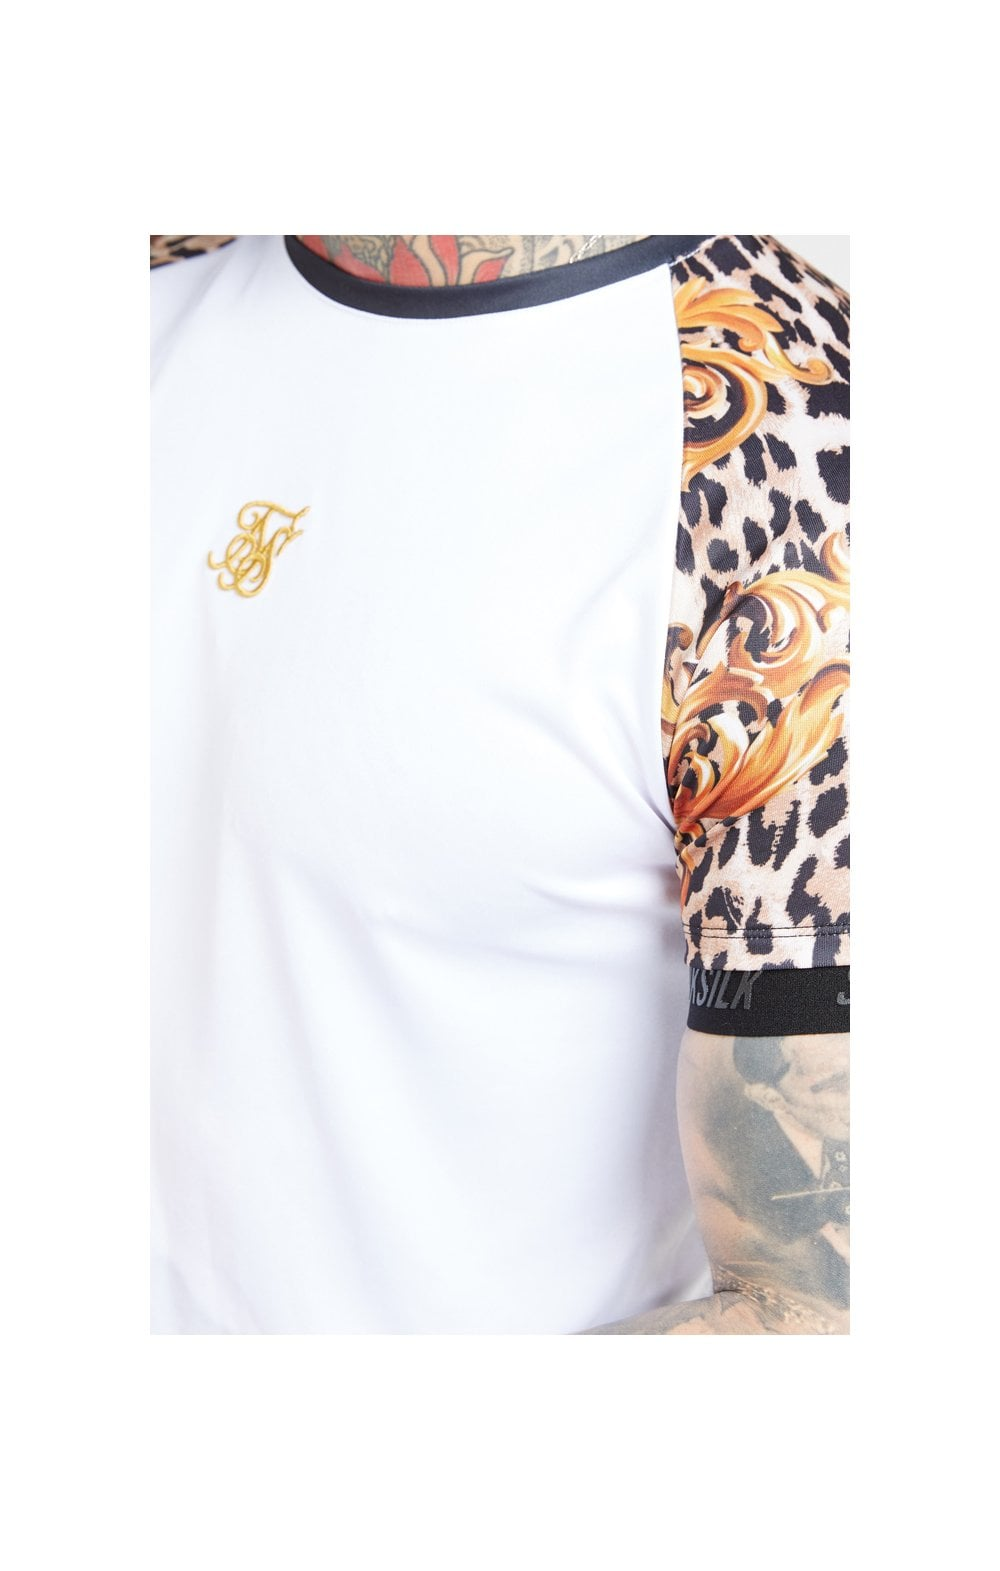 SikSilk S/S Curved Hem Raglan Tech Tee - White & Floral Leopard MEN SIZES TOP: Small